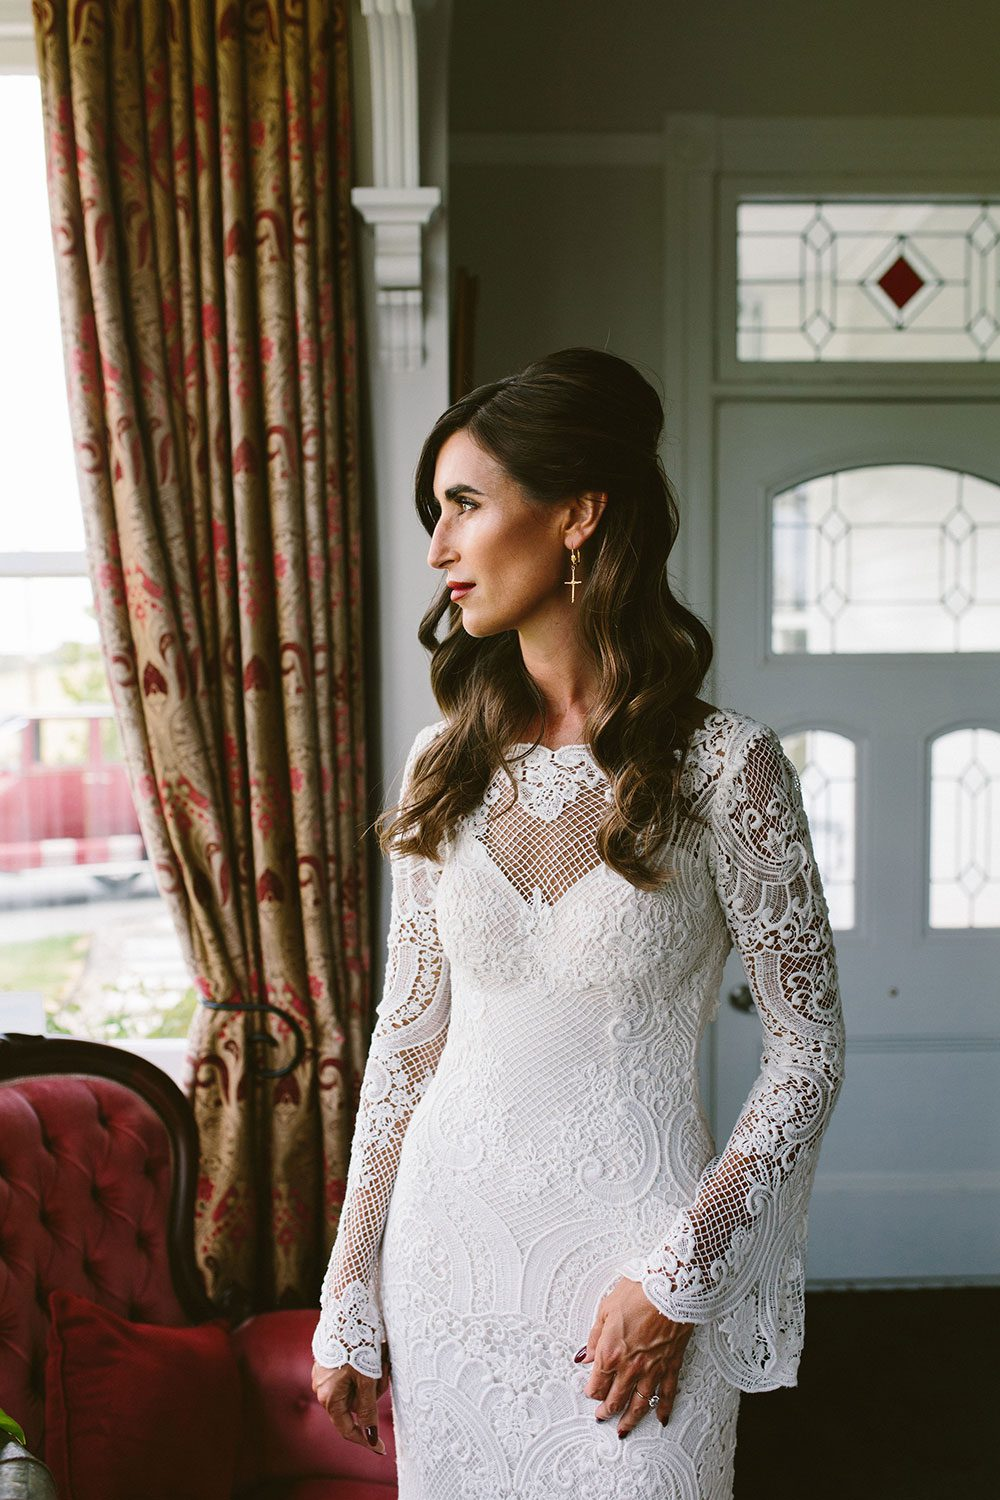 Bride wearing Sabine wedding gown by Auckland wedding dress maker Vinka Design, with French crochet lace detail and long sleeves - at window